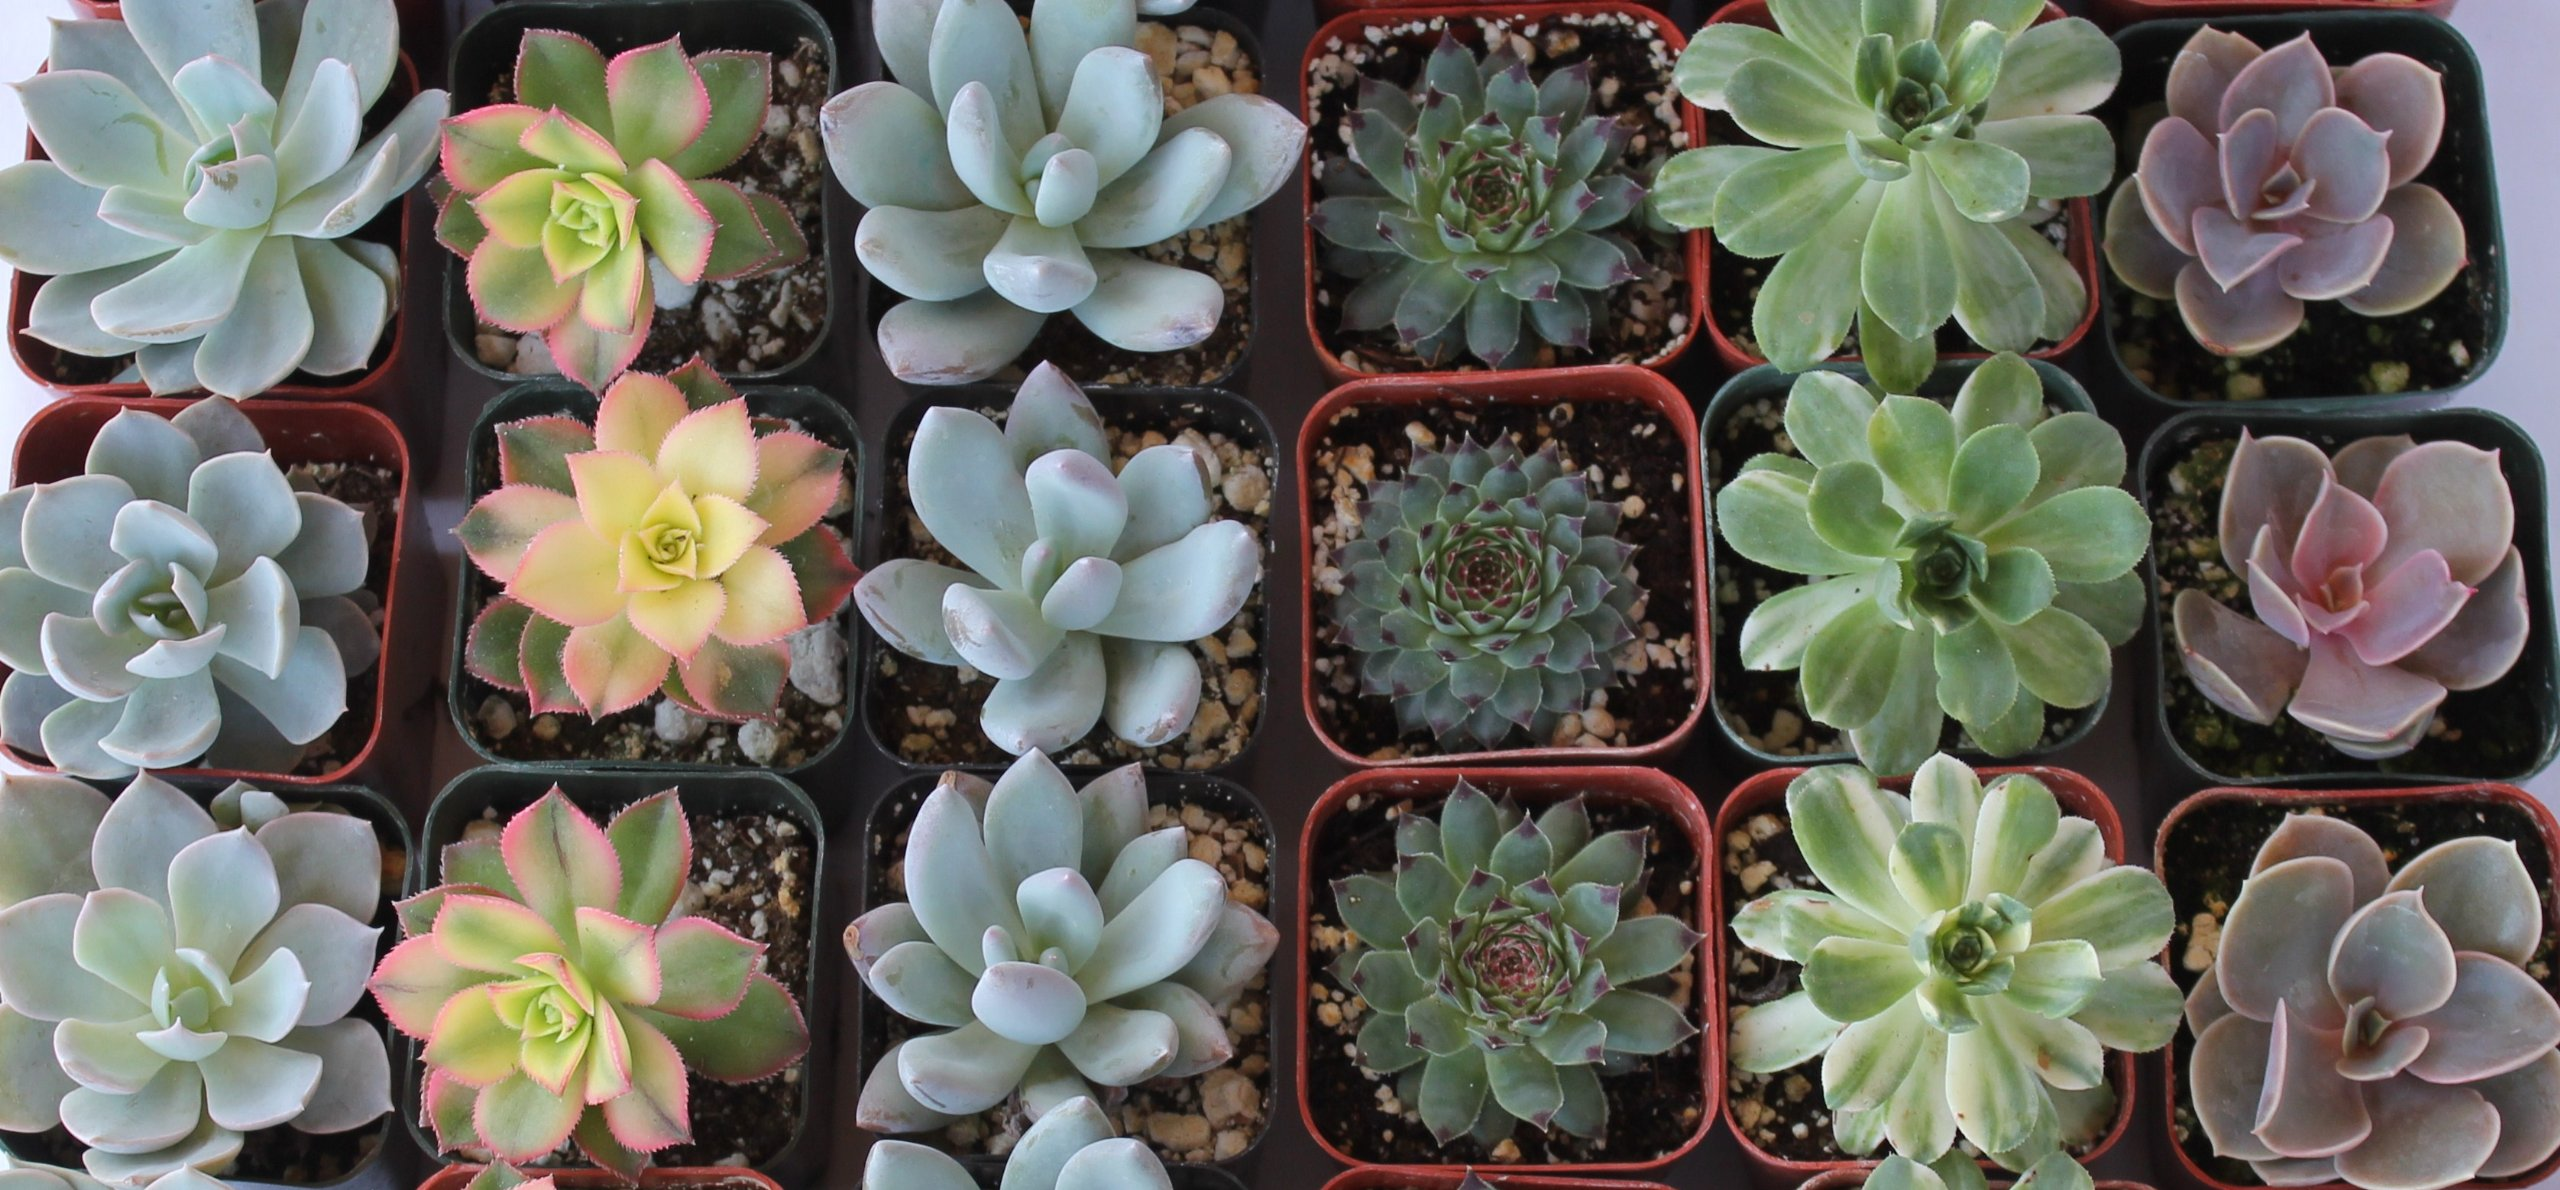 Jiimz 80 Lovely Succulents for Wedding Party Favors by jiimz (Image #2)